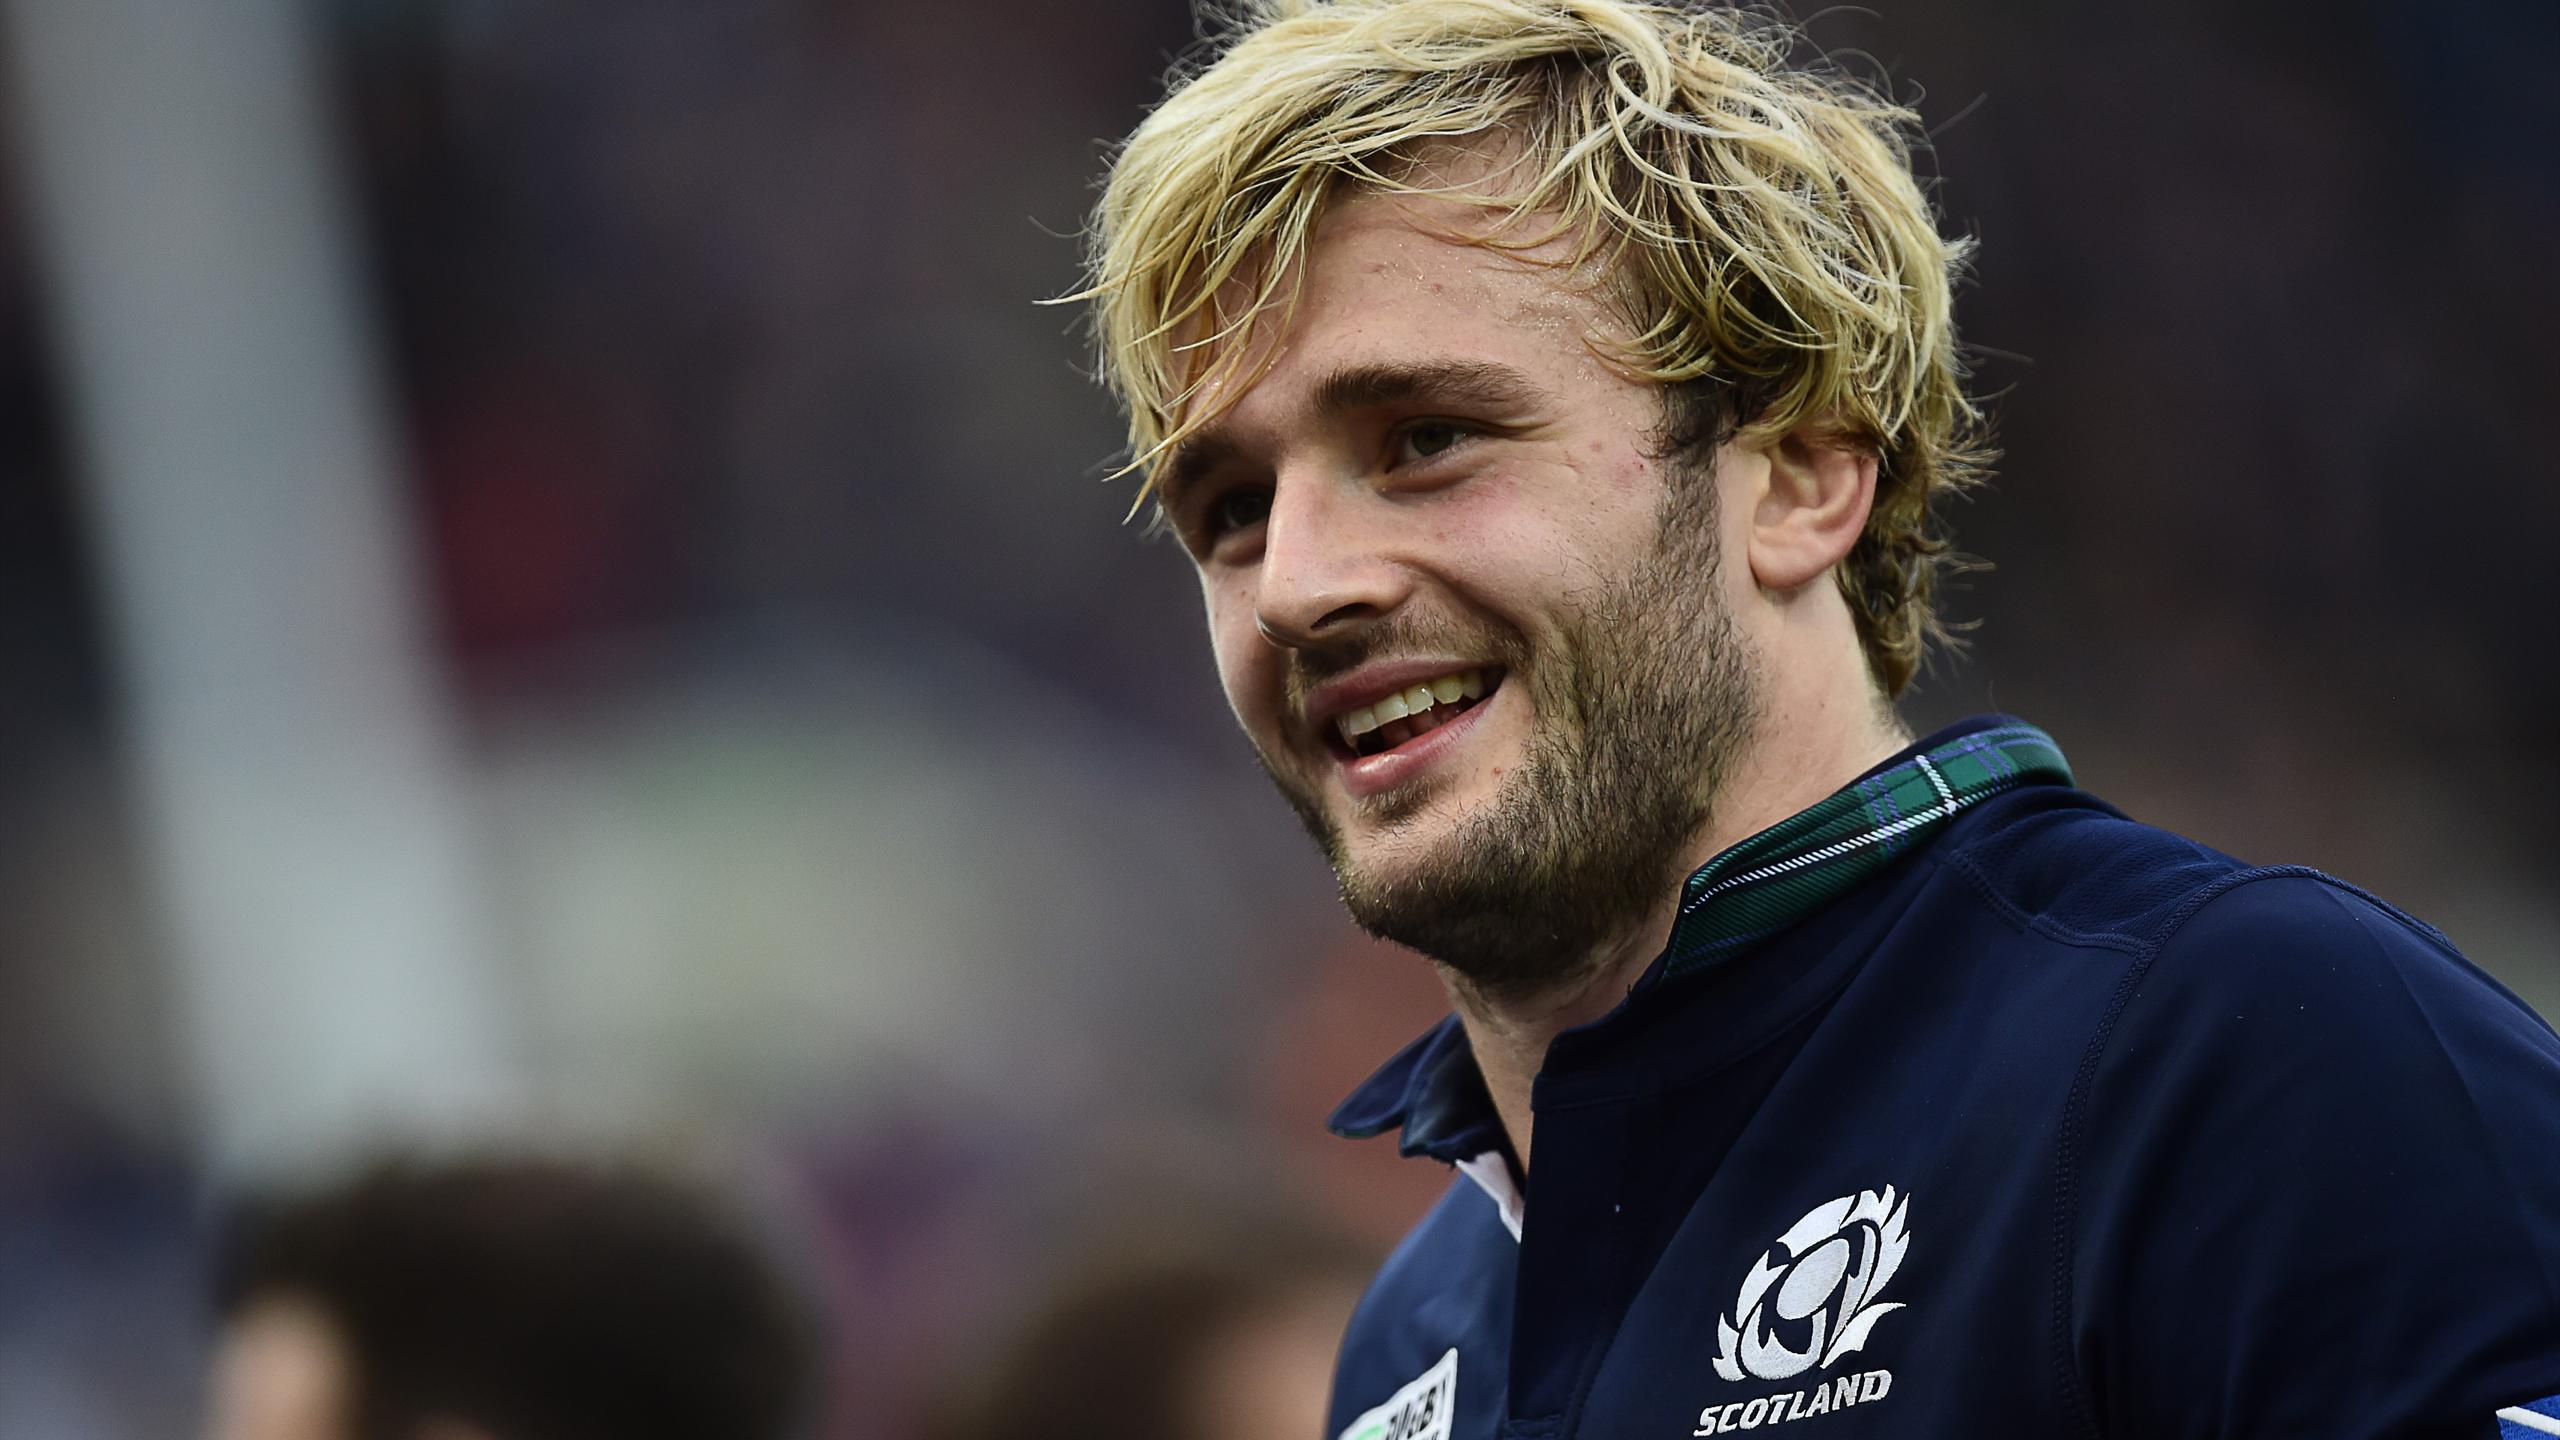 Richie Gray à Toulouse